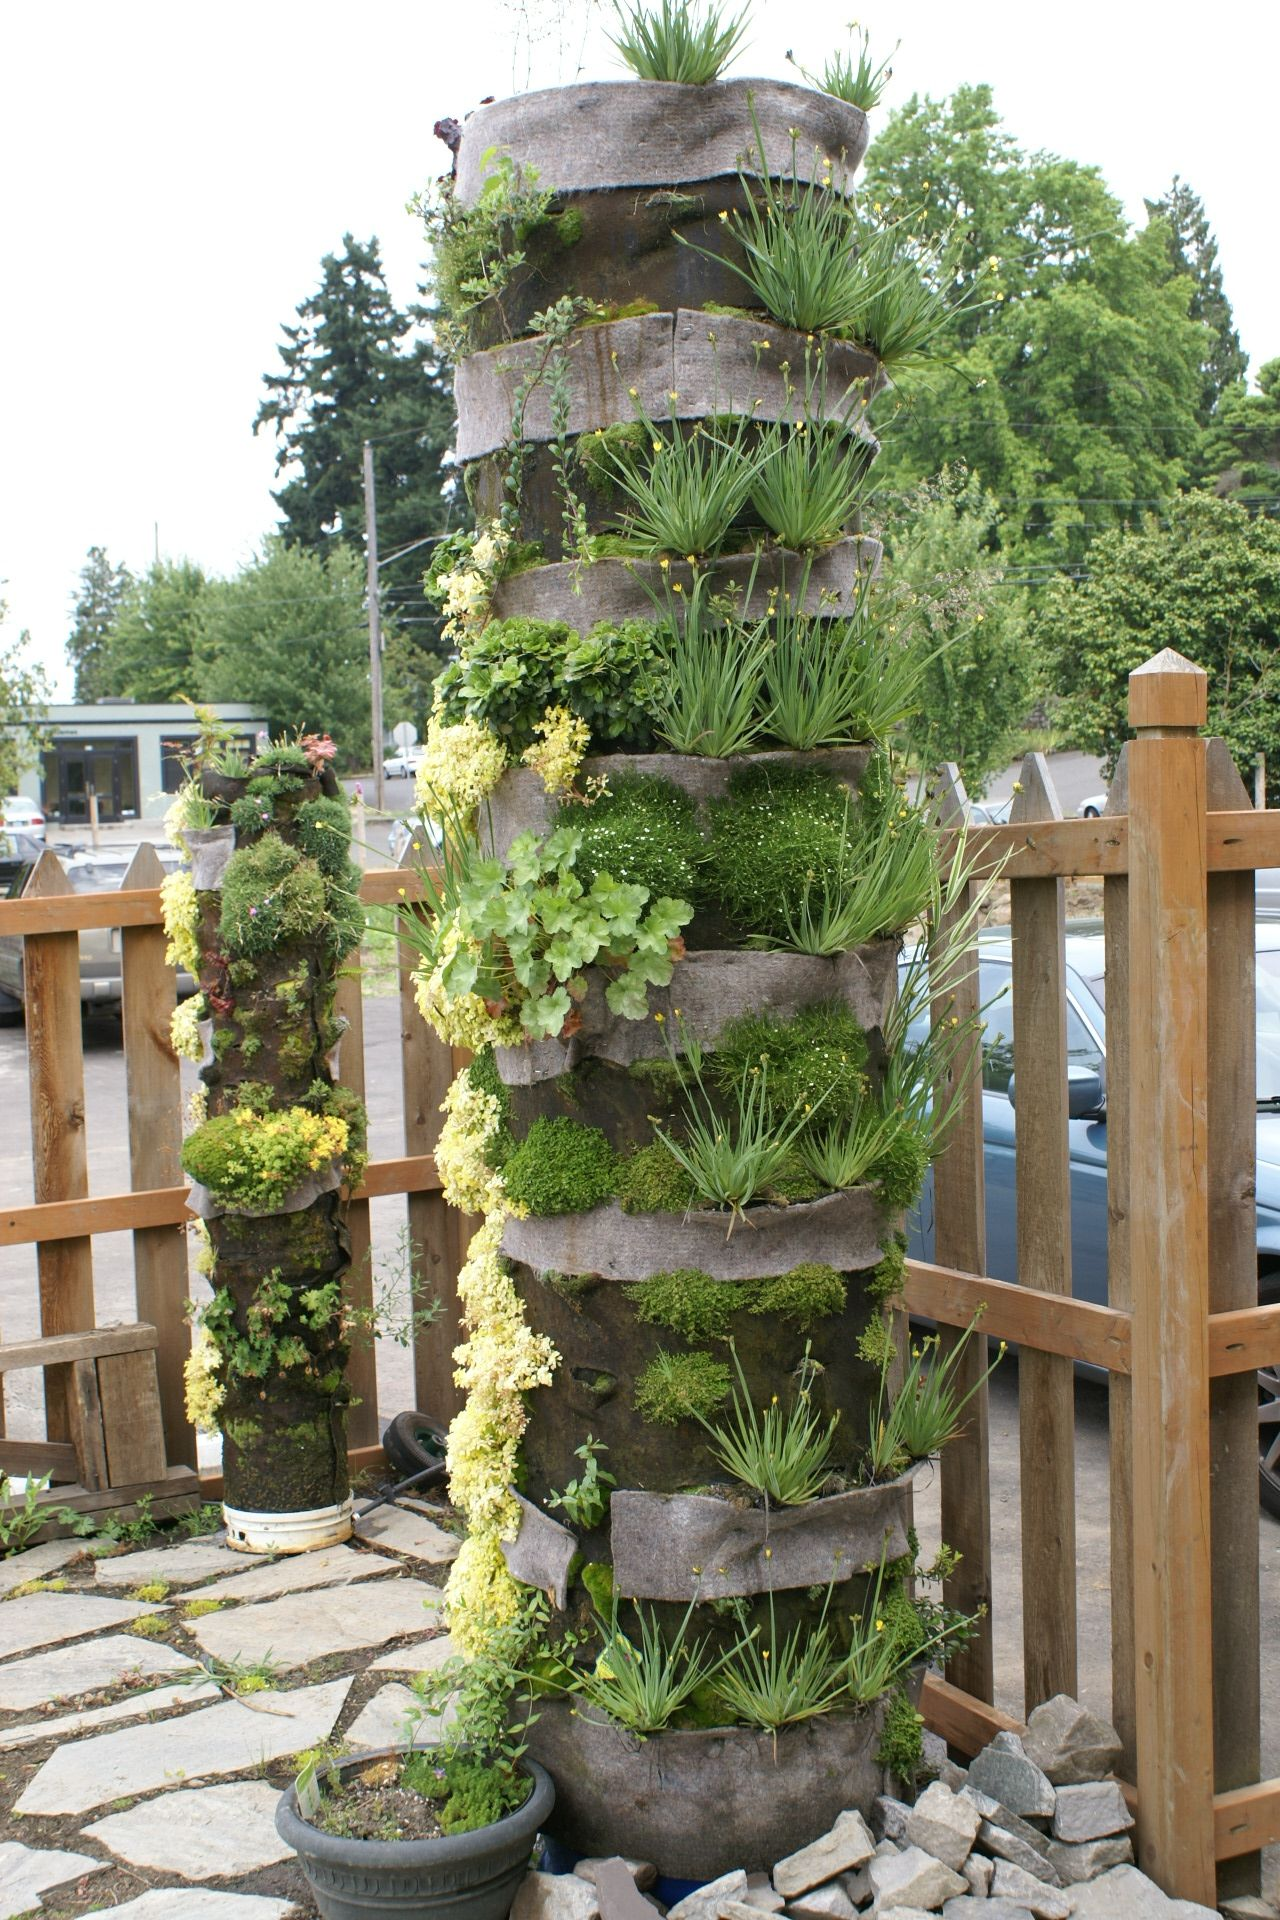 vertical garden column - would not have a very big footprint and easy irrigation    http://www.lushe.com.au/tag/vertical-gardens/